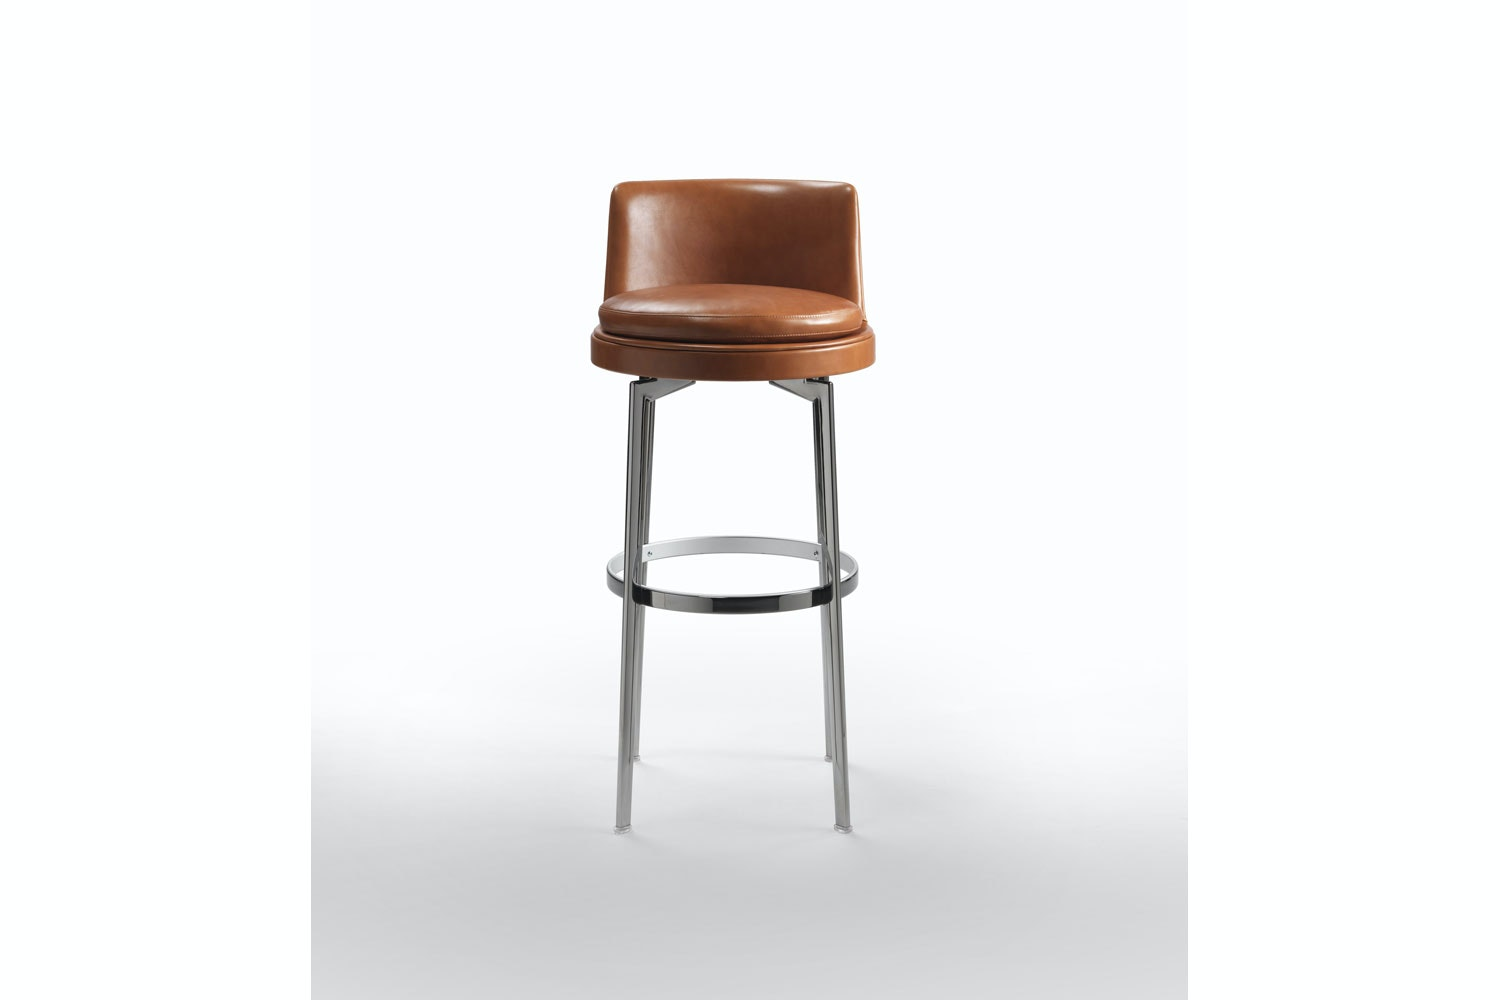 FEEL GOOD STOOL by Antonio Citterio for Flexform